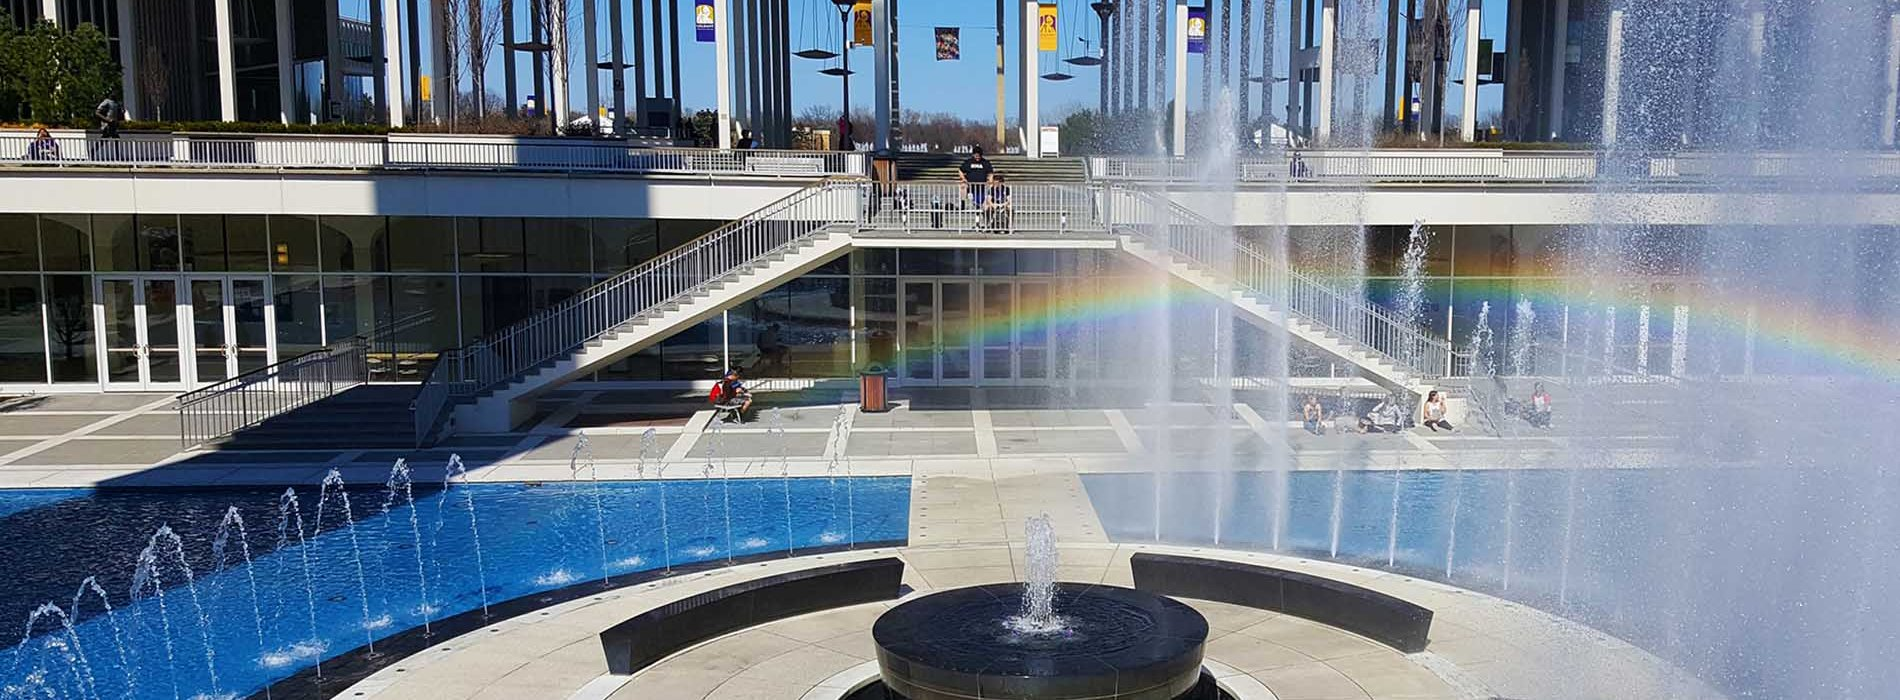 UAlbany's Main fountain in the summer